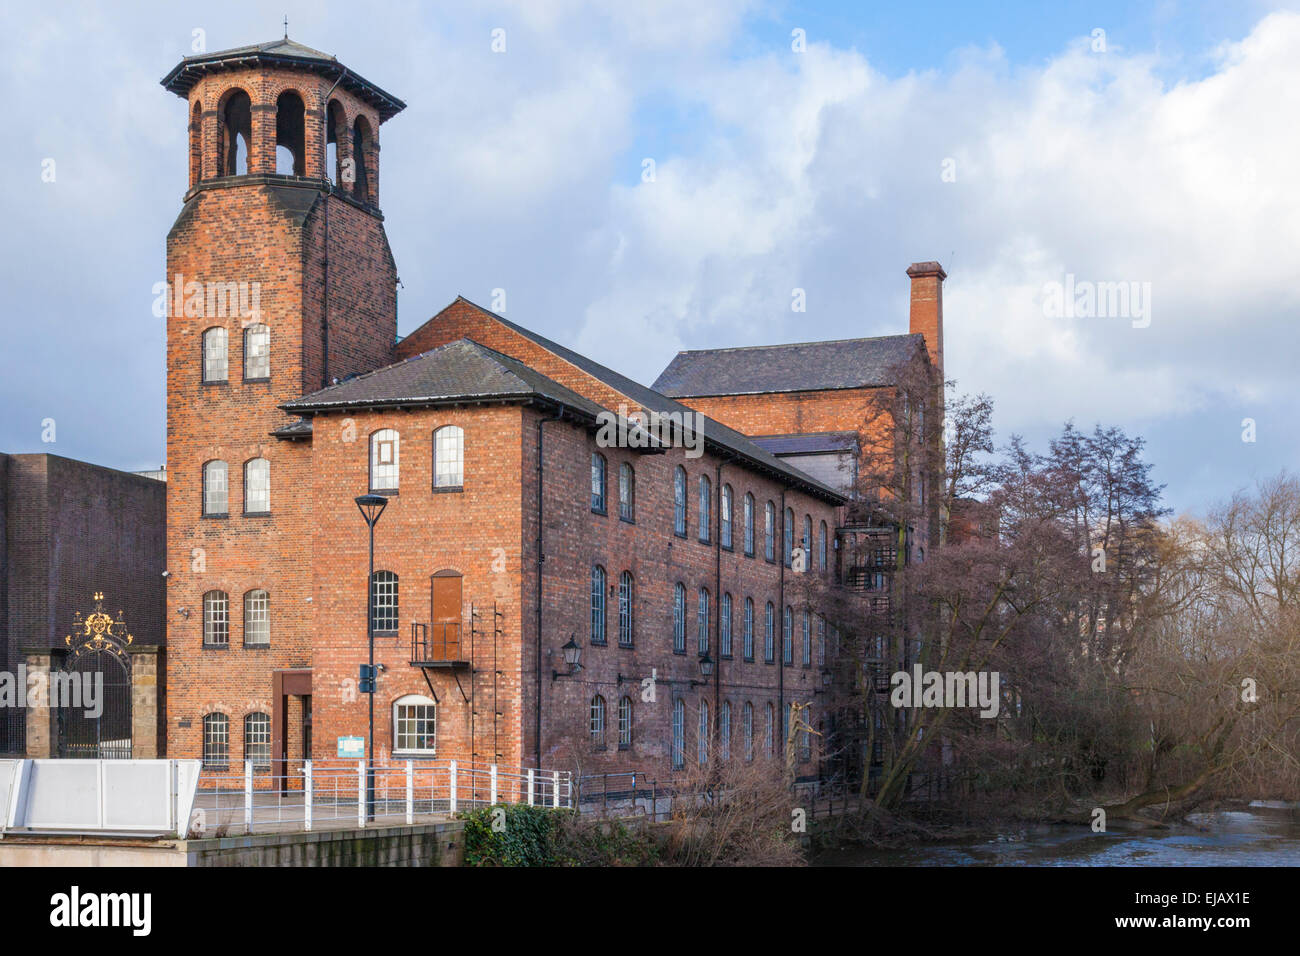 Derby Silk Mill, Derby, England, UK, formerly known as Derby Industrial Museum. It is part of the Derwent Valley - Stock Image